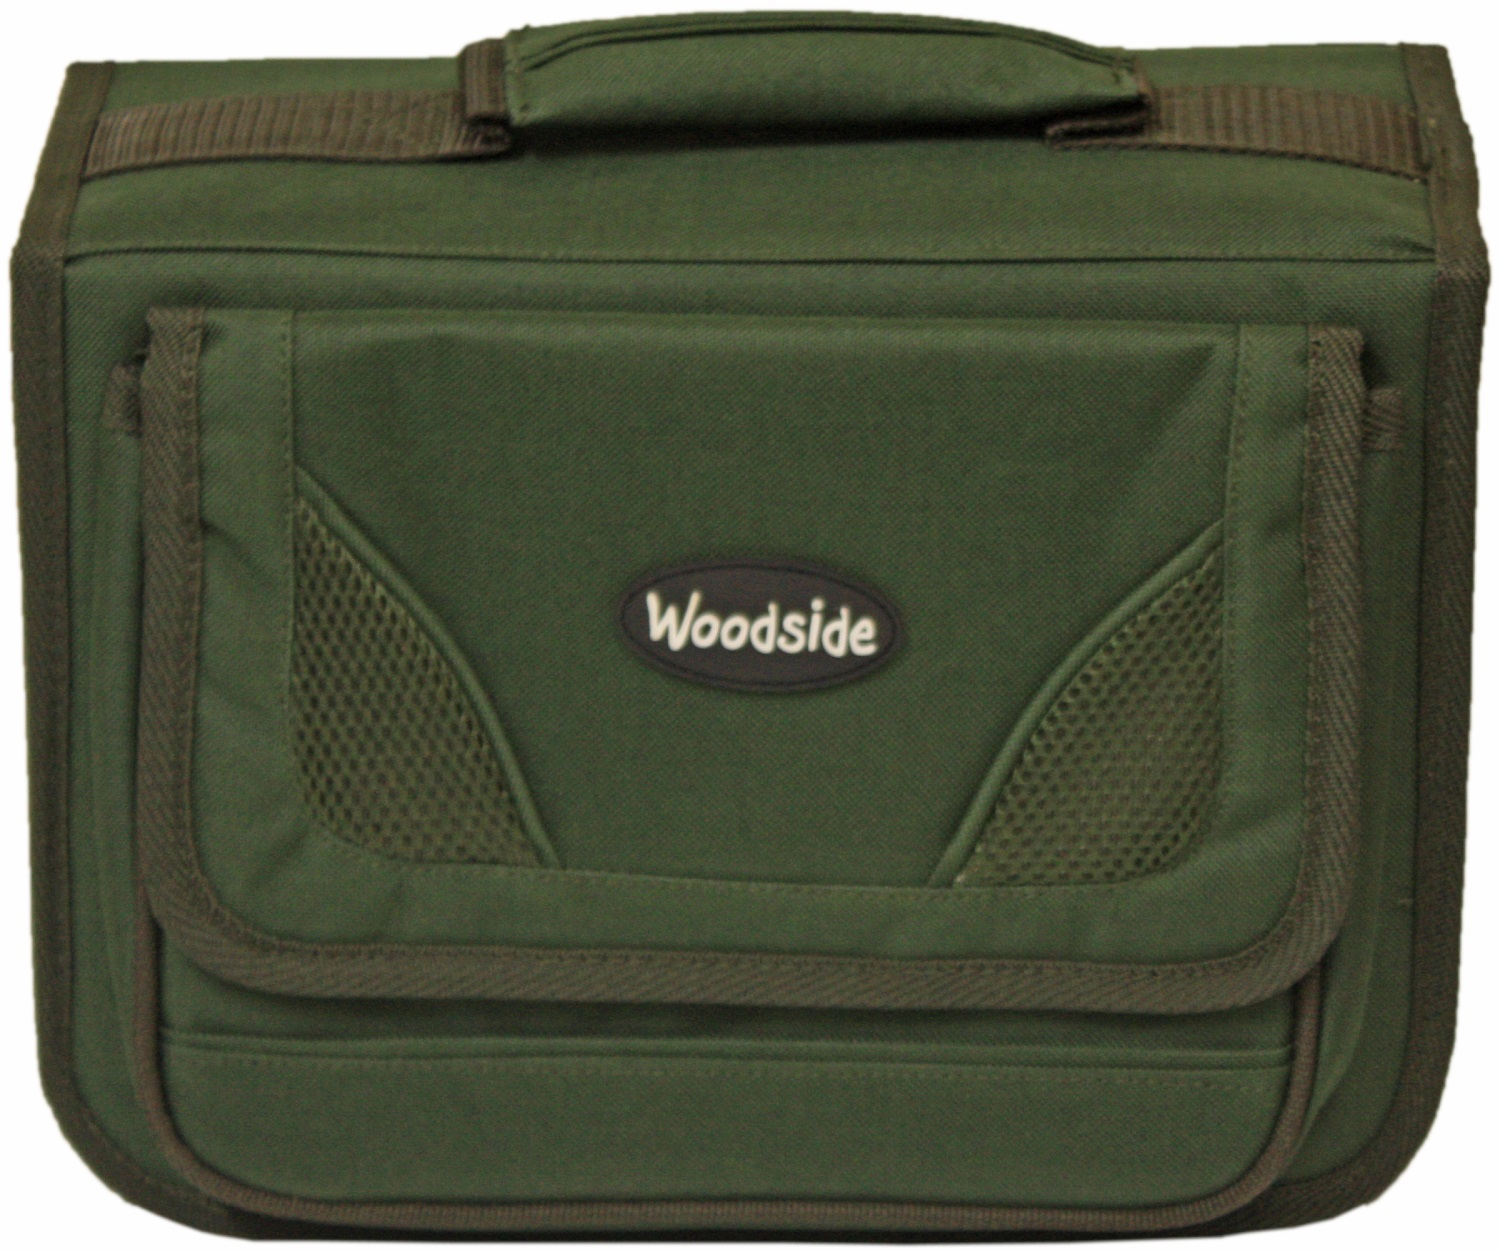 Woodside rig wallet fishing tackle carry bag bit box with for Rigged fishing backpack